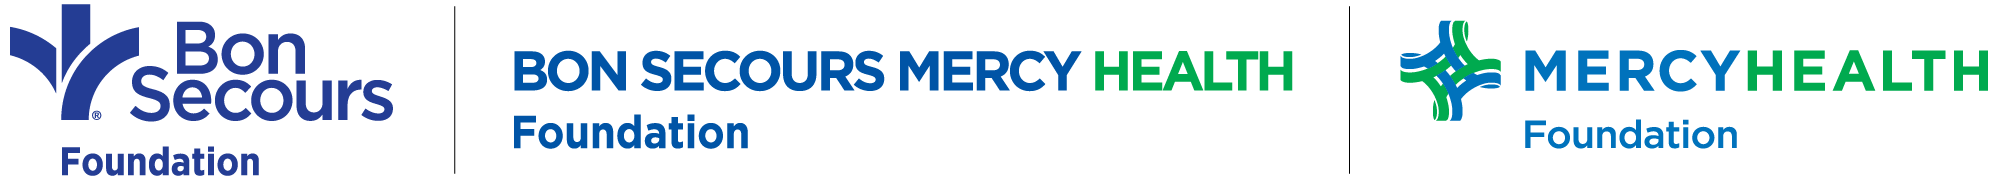 Bon Secours Mercy Health Foundation